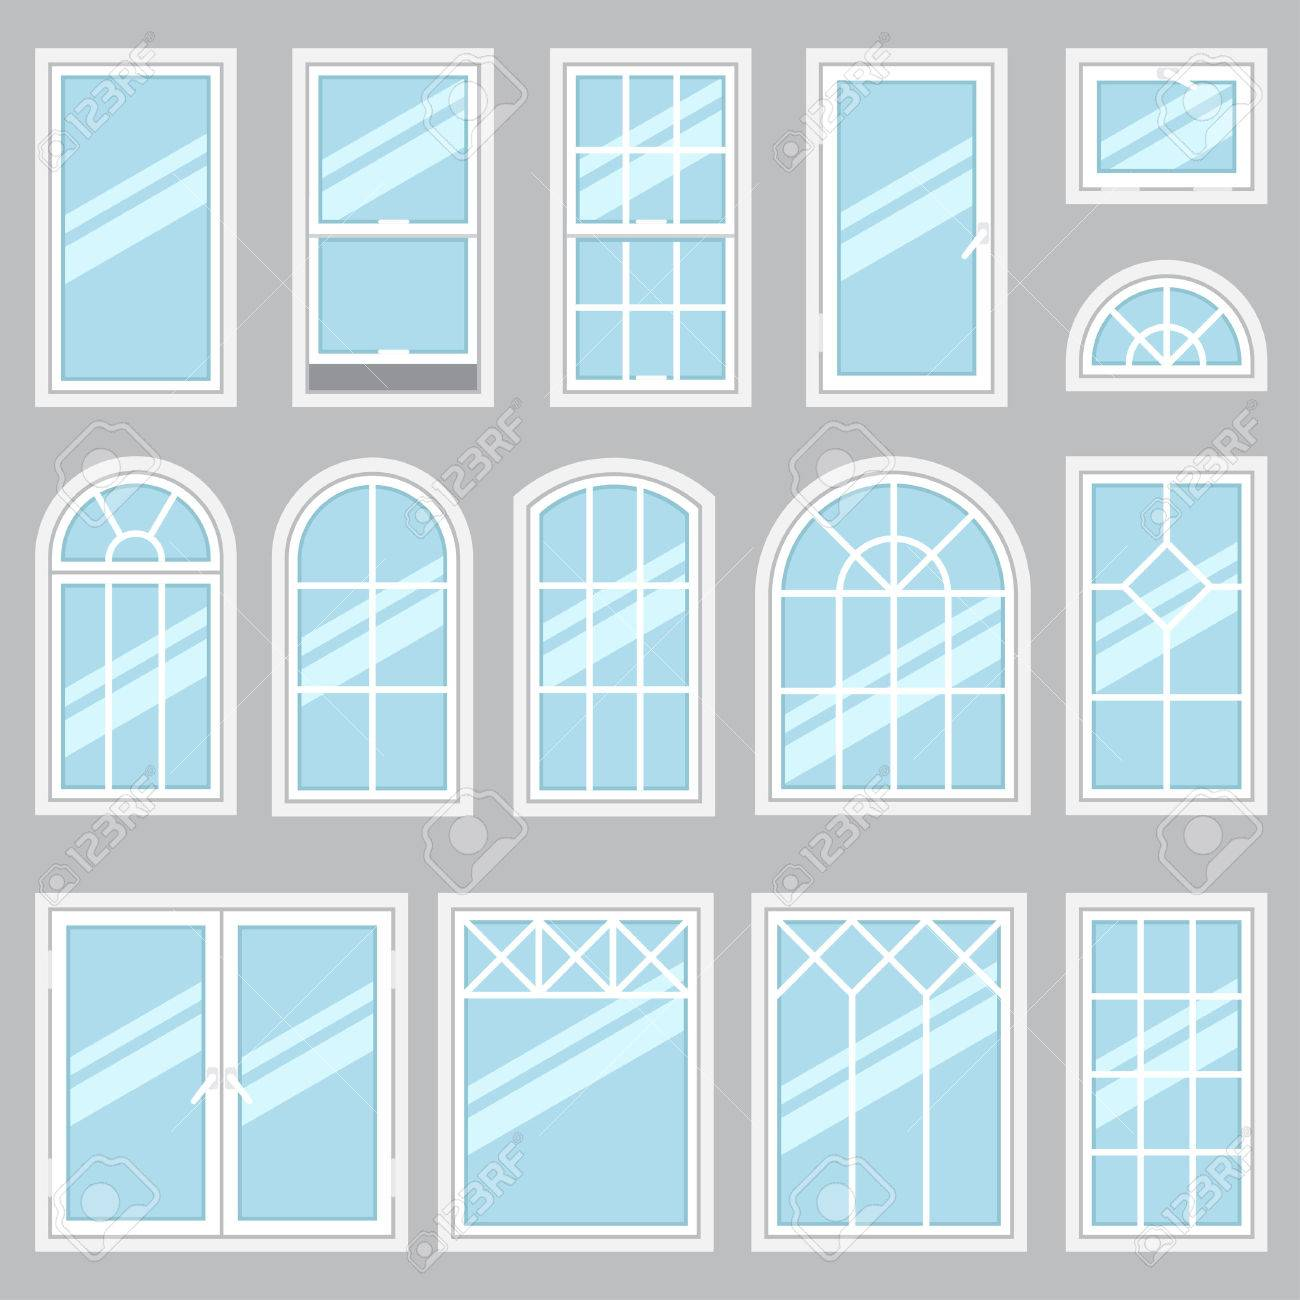 Vector collection of various windows types. For interior and exterior use. Flat style. - 53441259